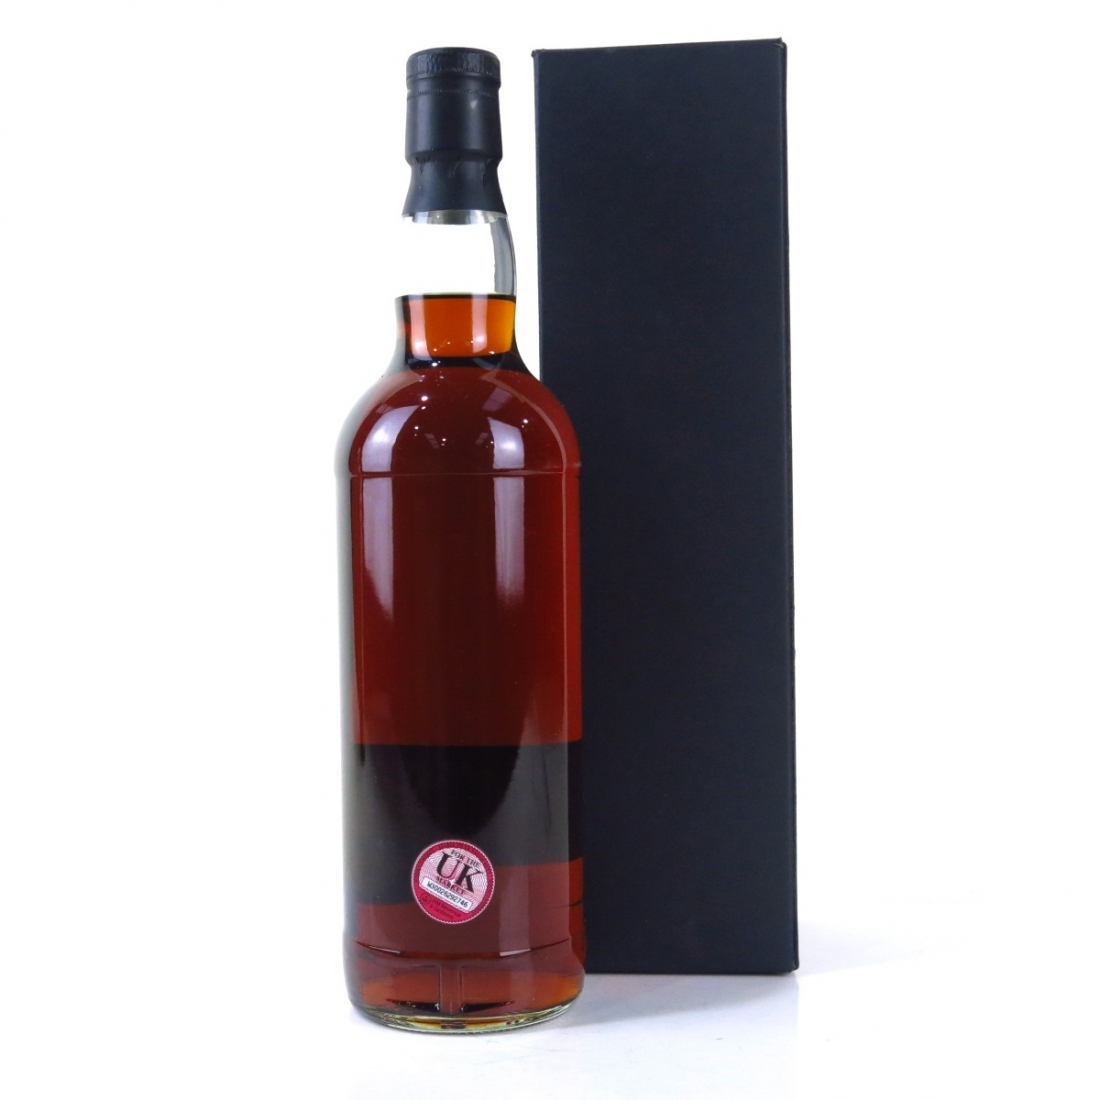 Glenrothes 2007 Adelphi 8 Year Old